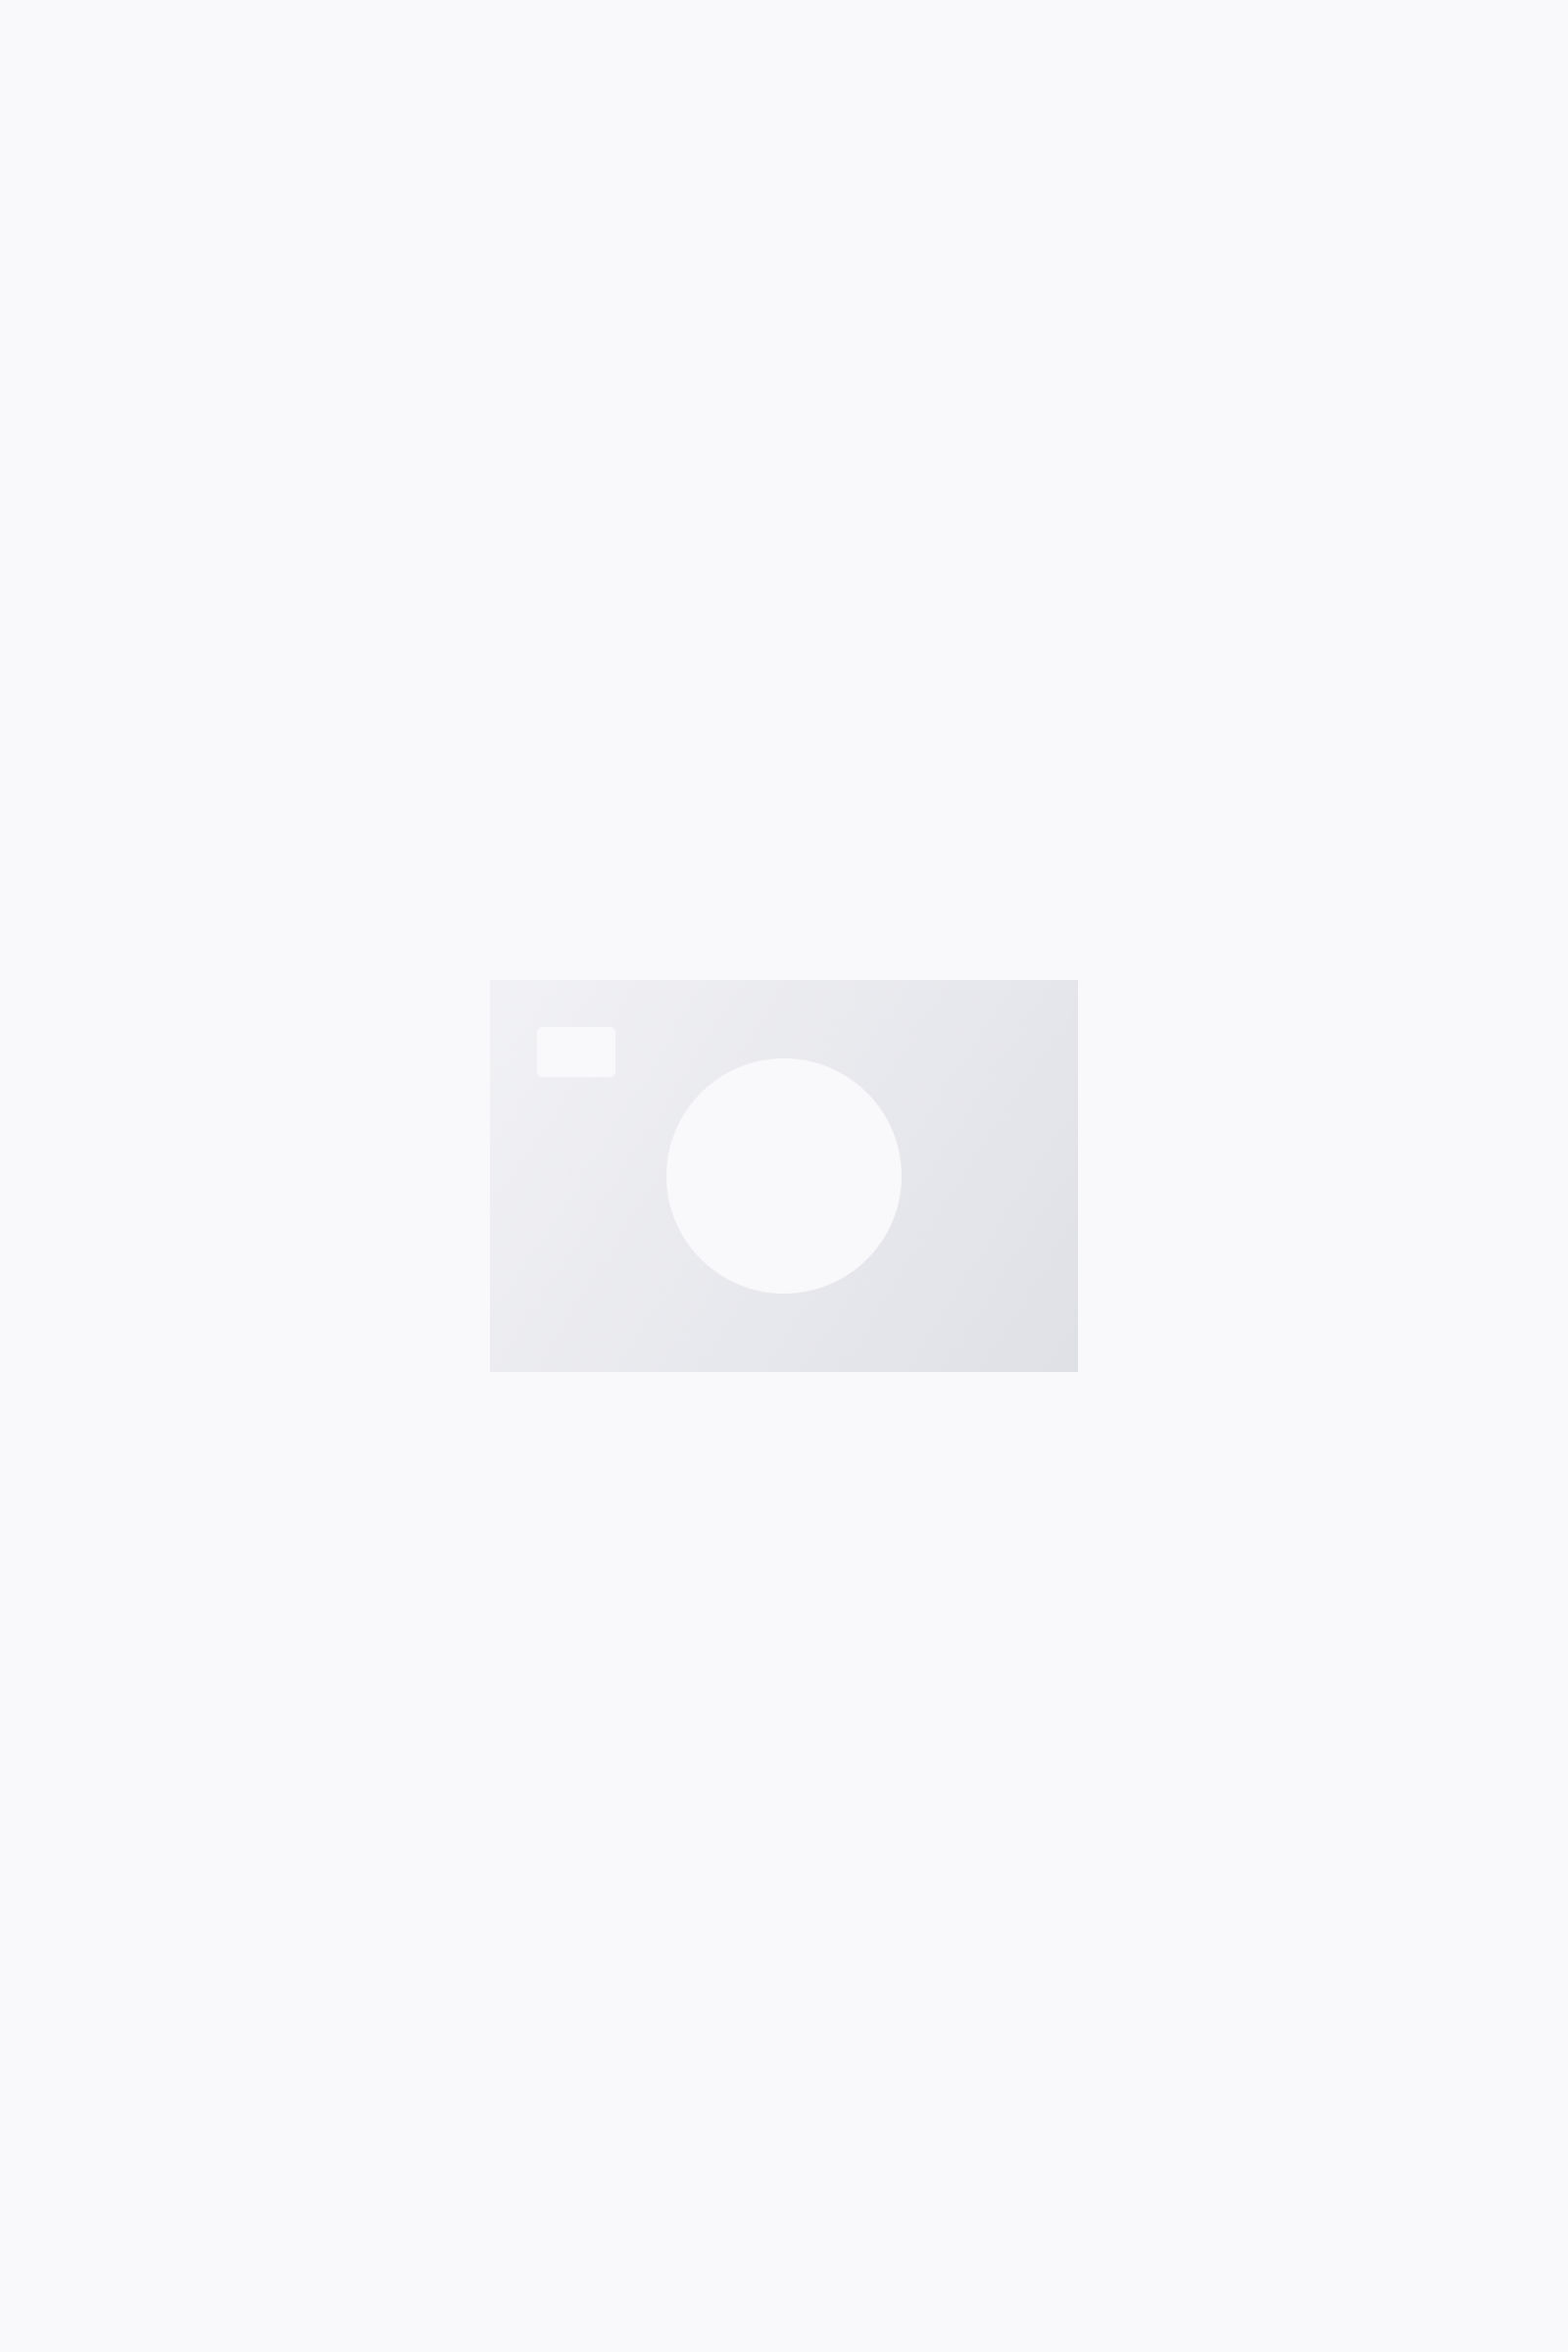 COS HEMP BOMBER JACKET,light grey